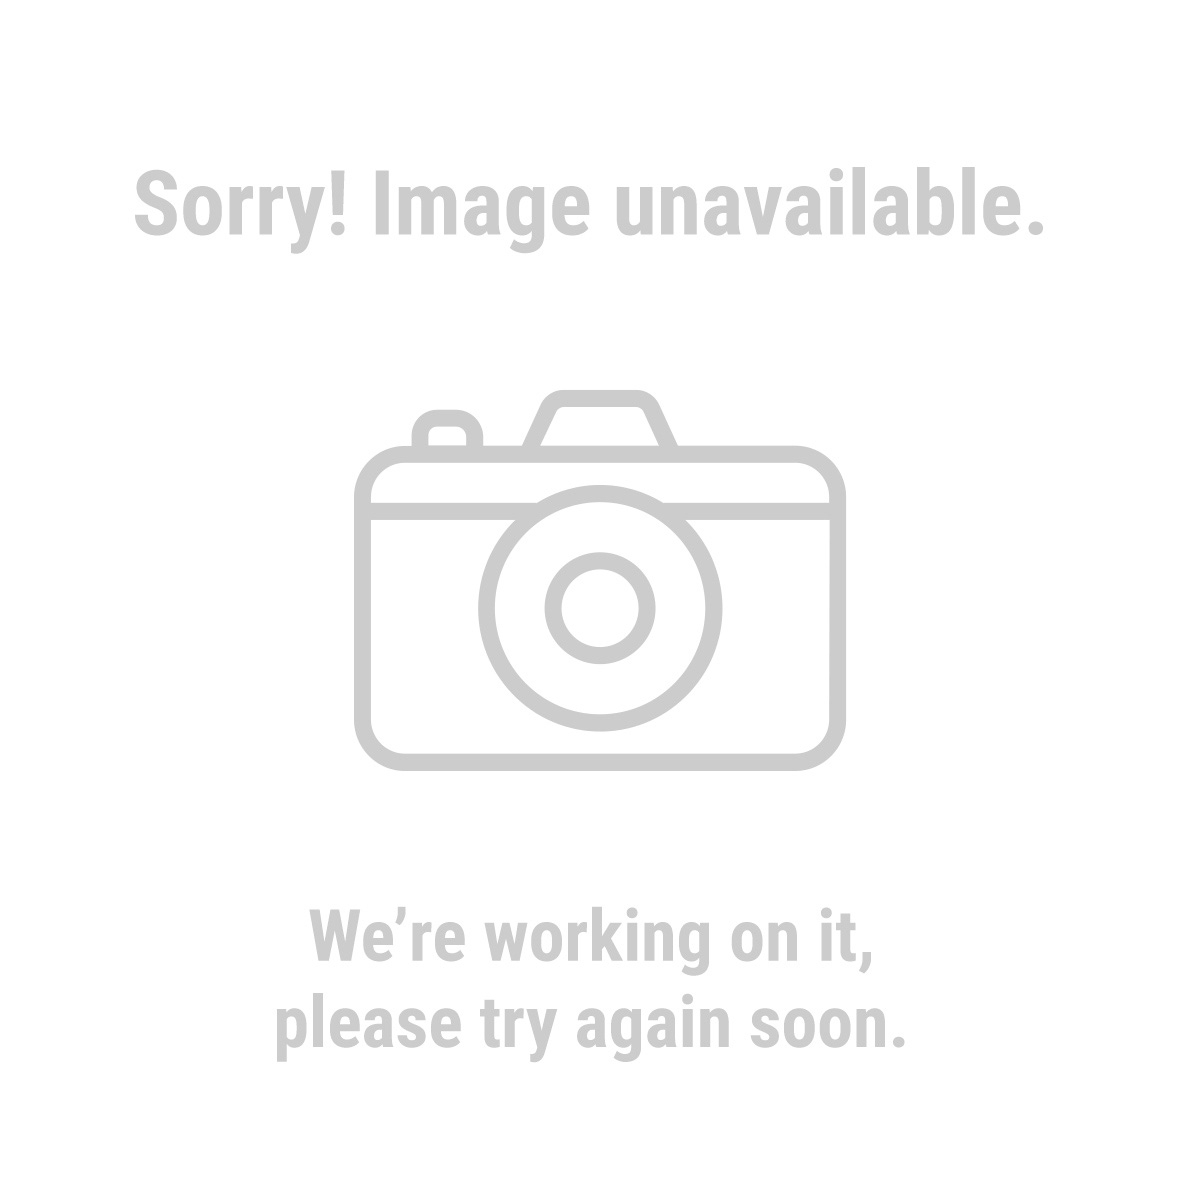 Pittsburgh Automotive 69481 12 Ton Heavy Duty Low Profile Industrial Hydraulic Bottle Jack